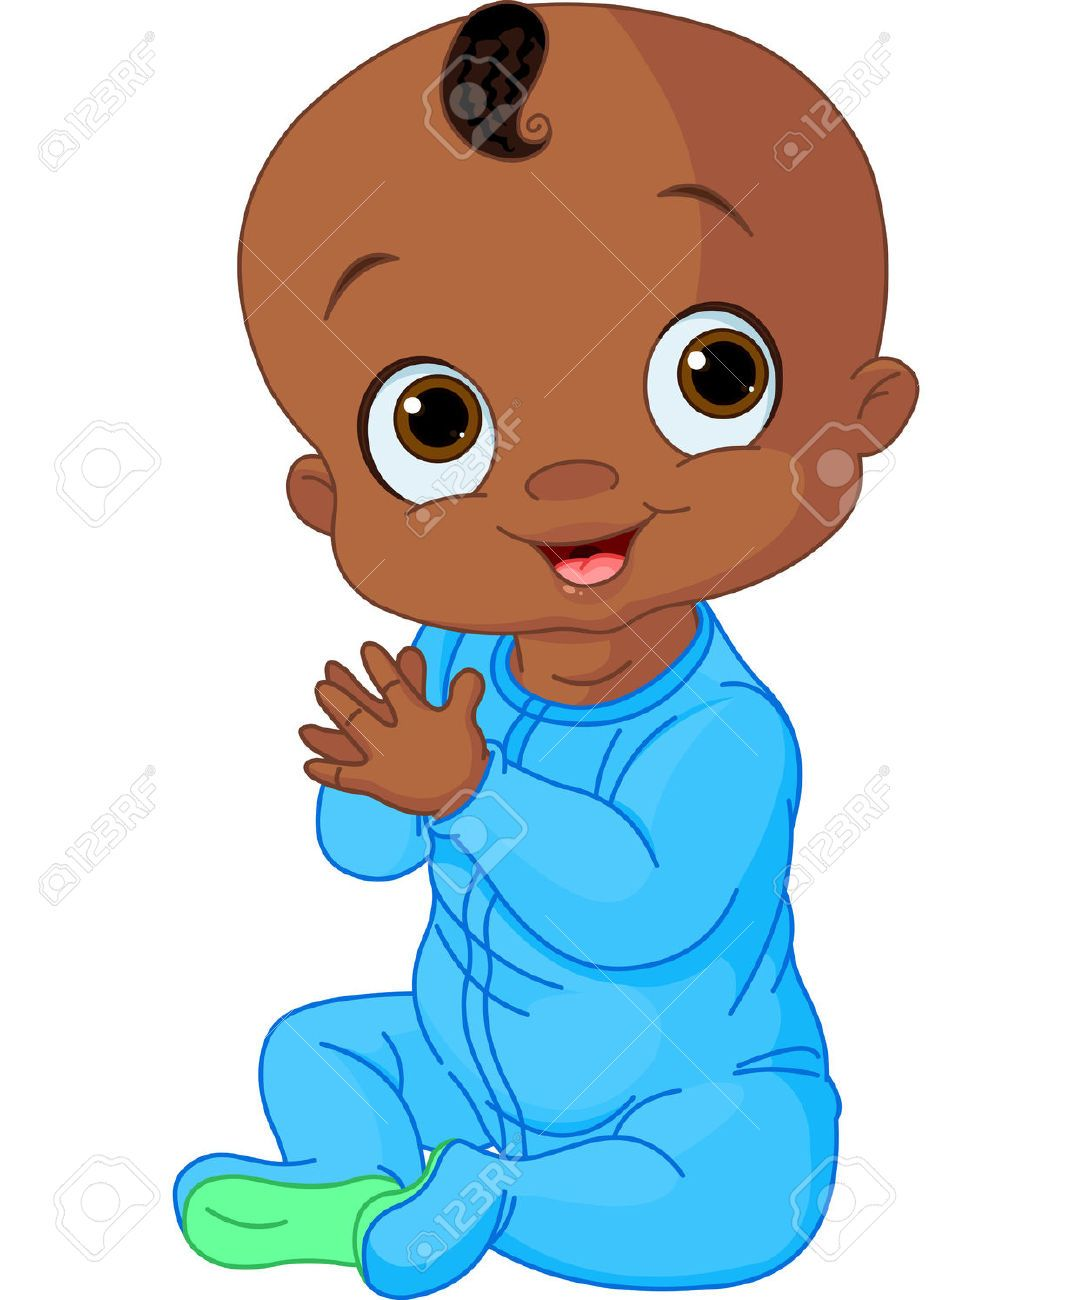 Black baby cartoon clipart clipart freeuse library Baby Boy Cartoon Images, Stock Pictures, Royalty Free Baby Boy ... clipart freeuse library